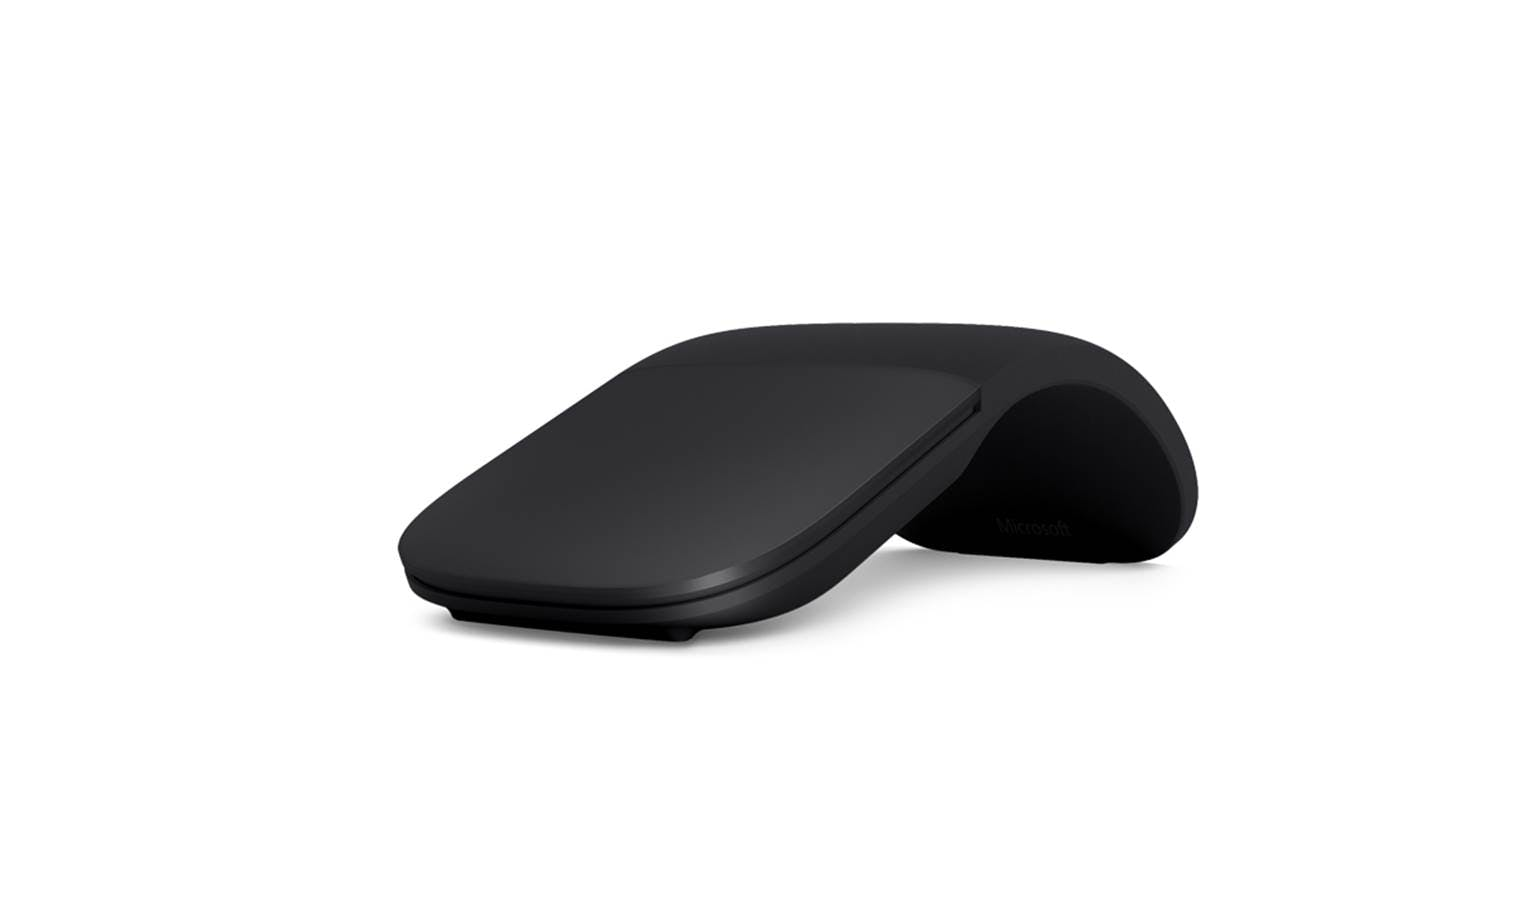 Microsoft ELG-00005 Bluetooth Arc Mouse